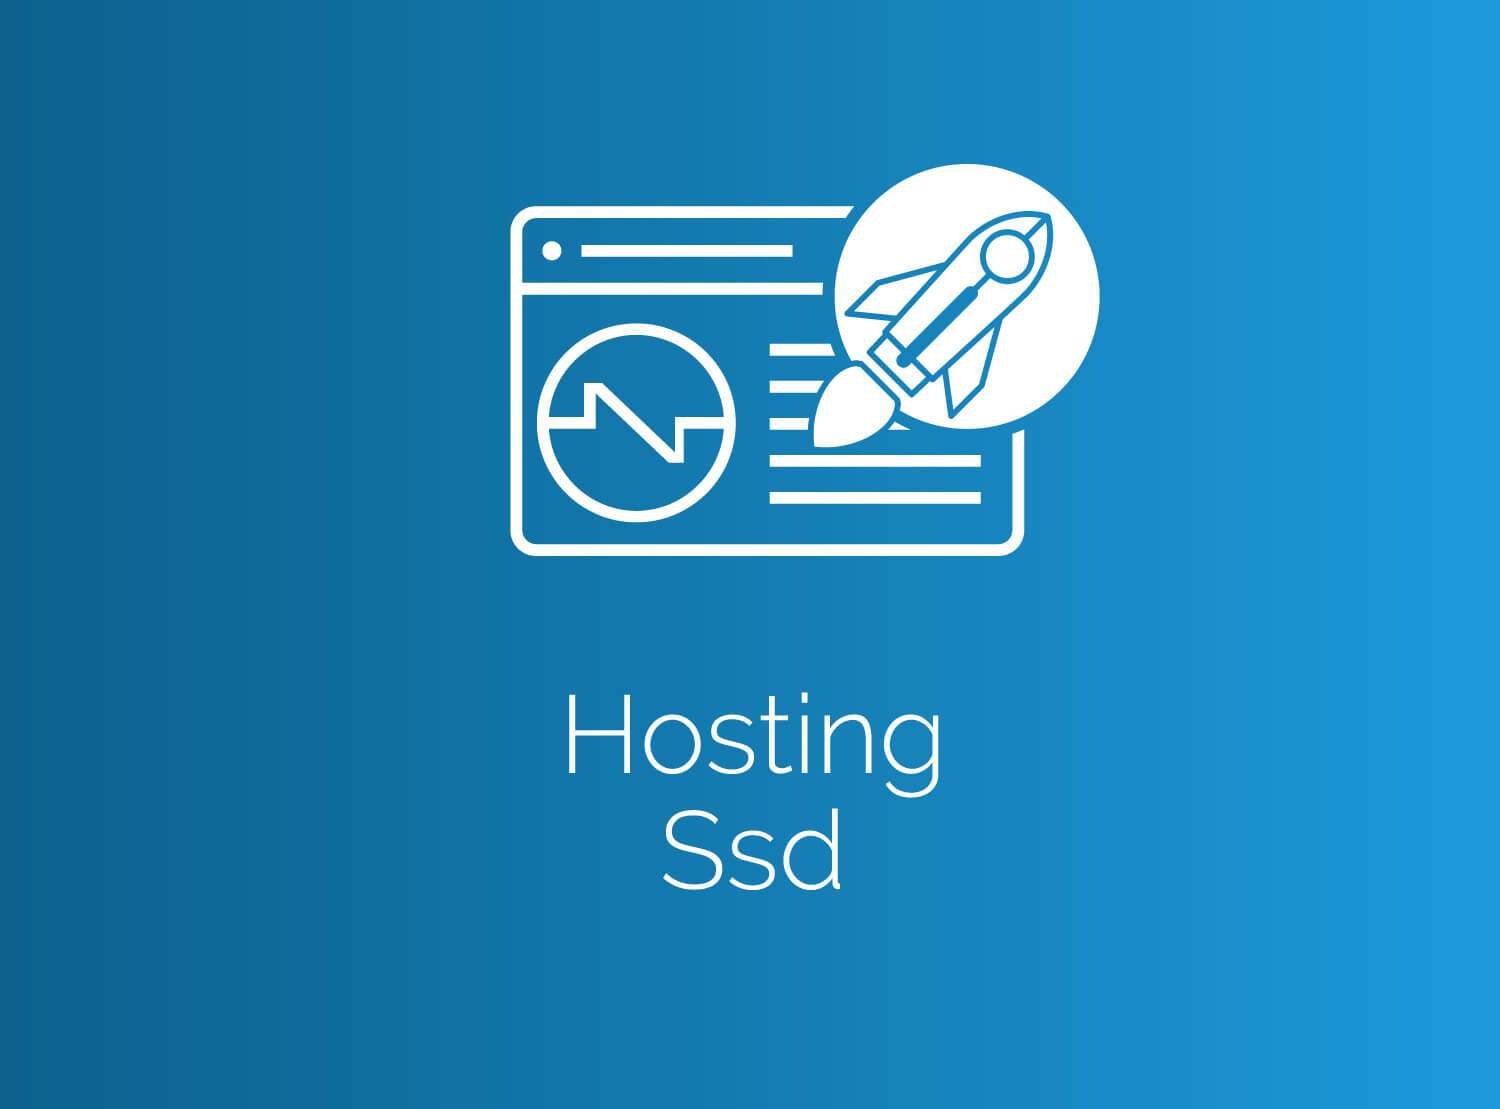 Hosting ssd Domain Serivice